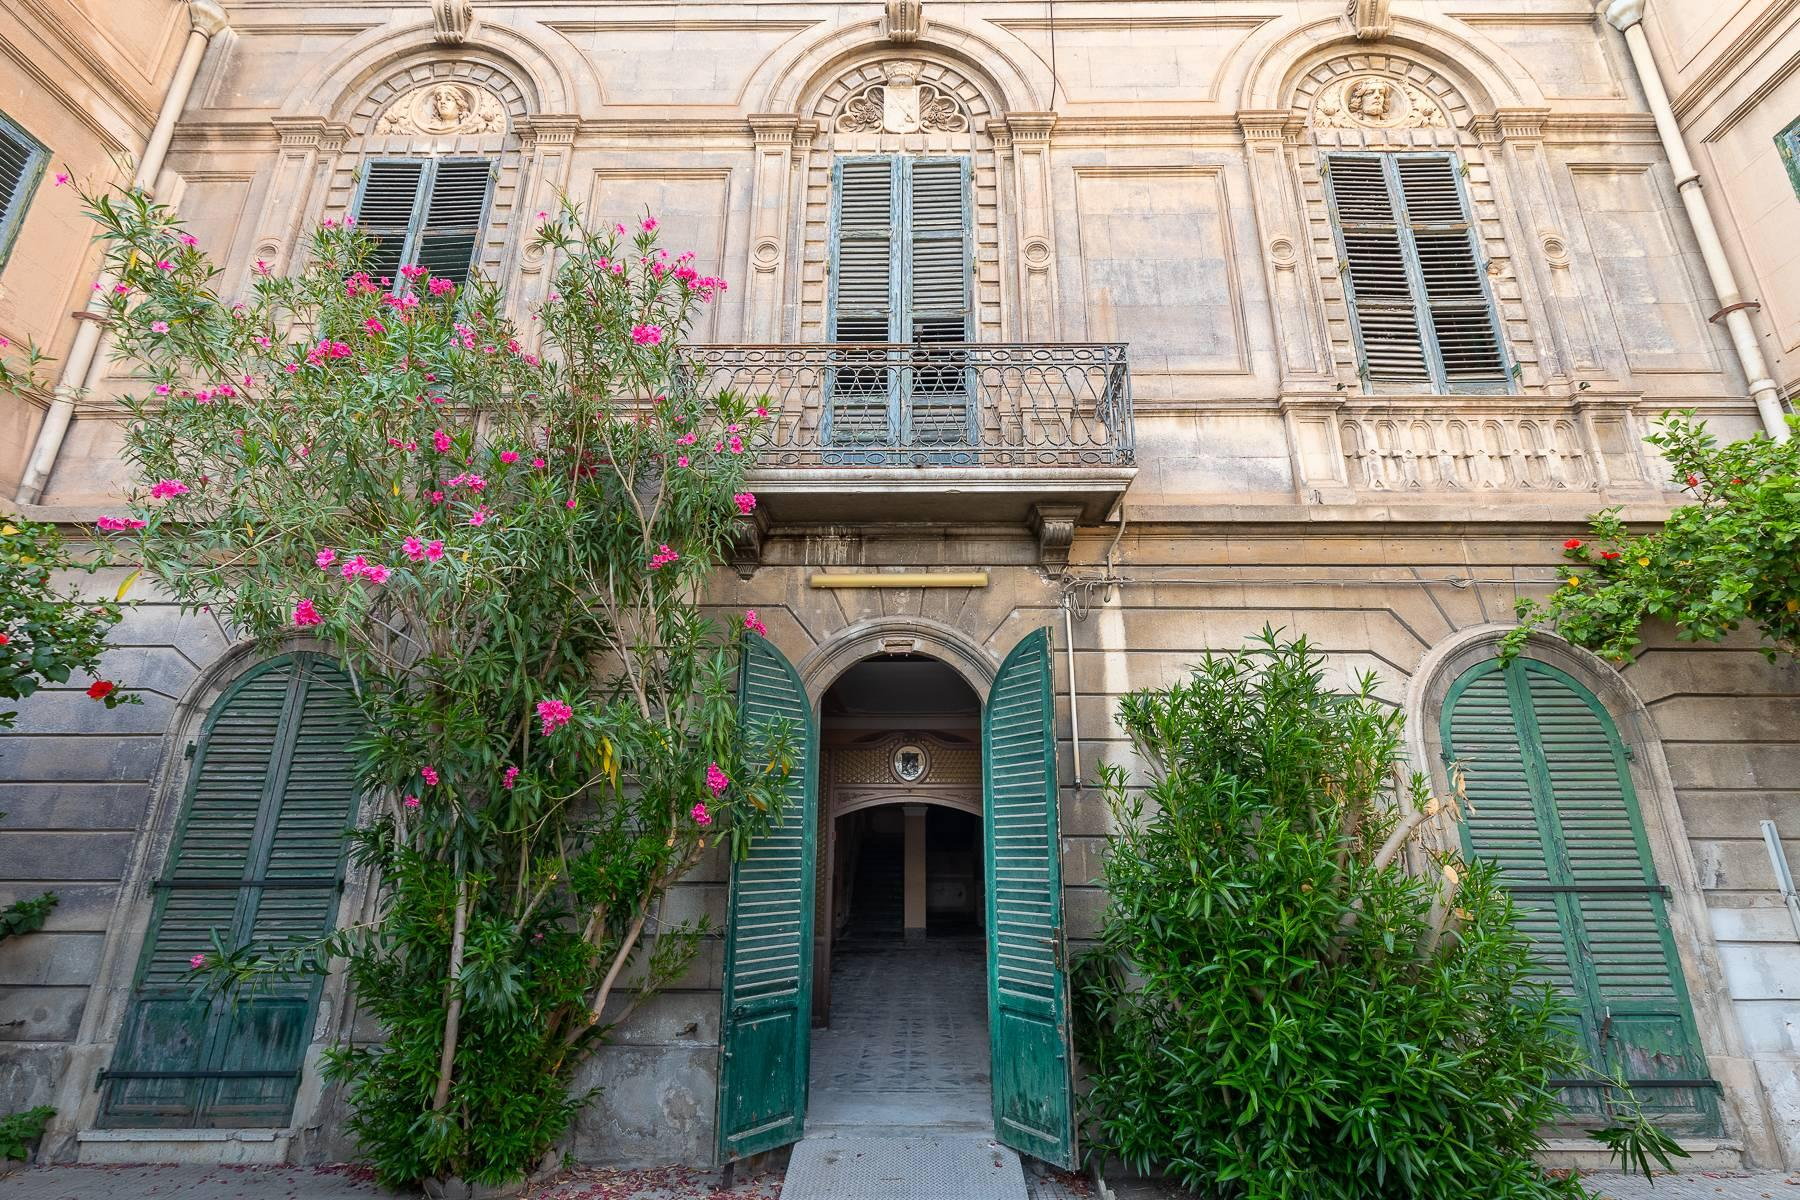 Liberty style building in the historical center of Trapani - 1